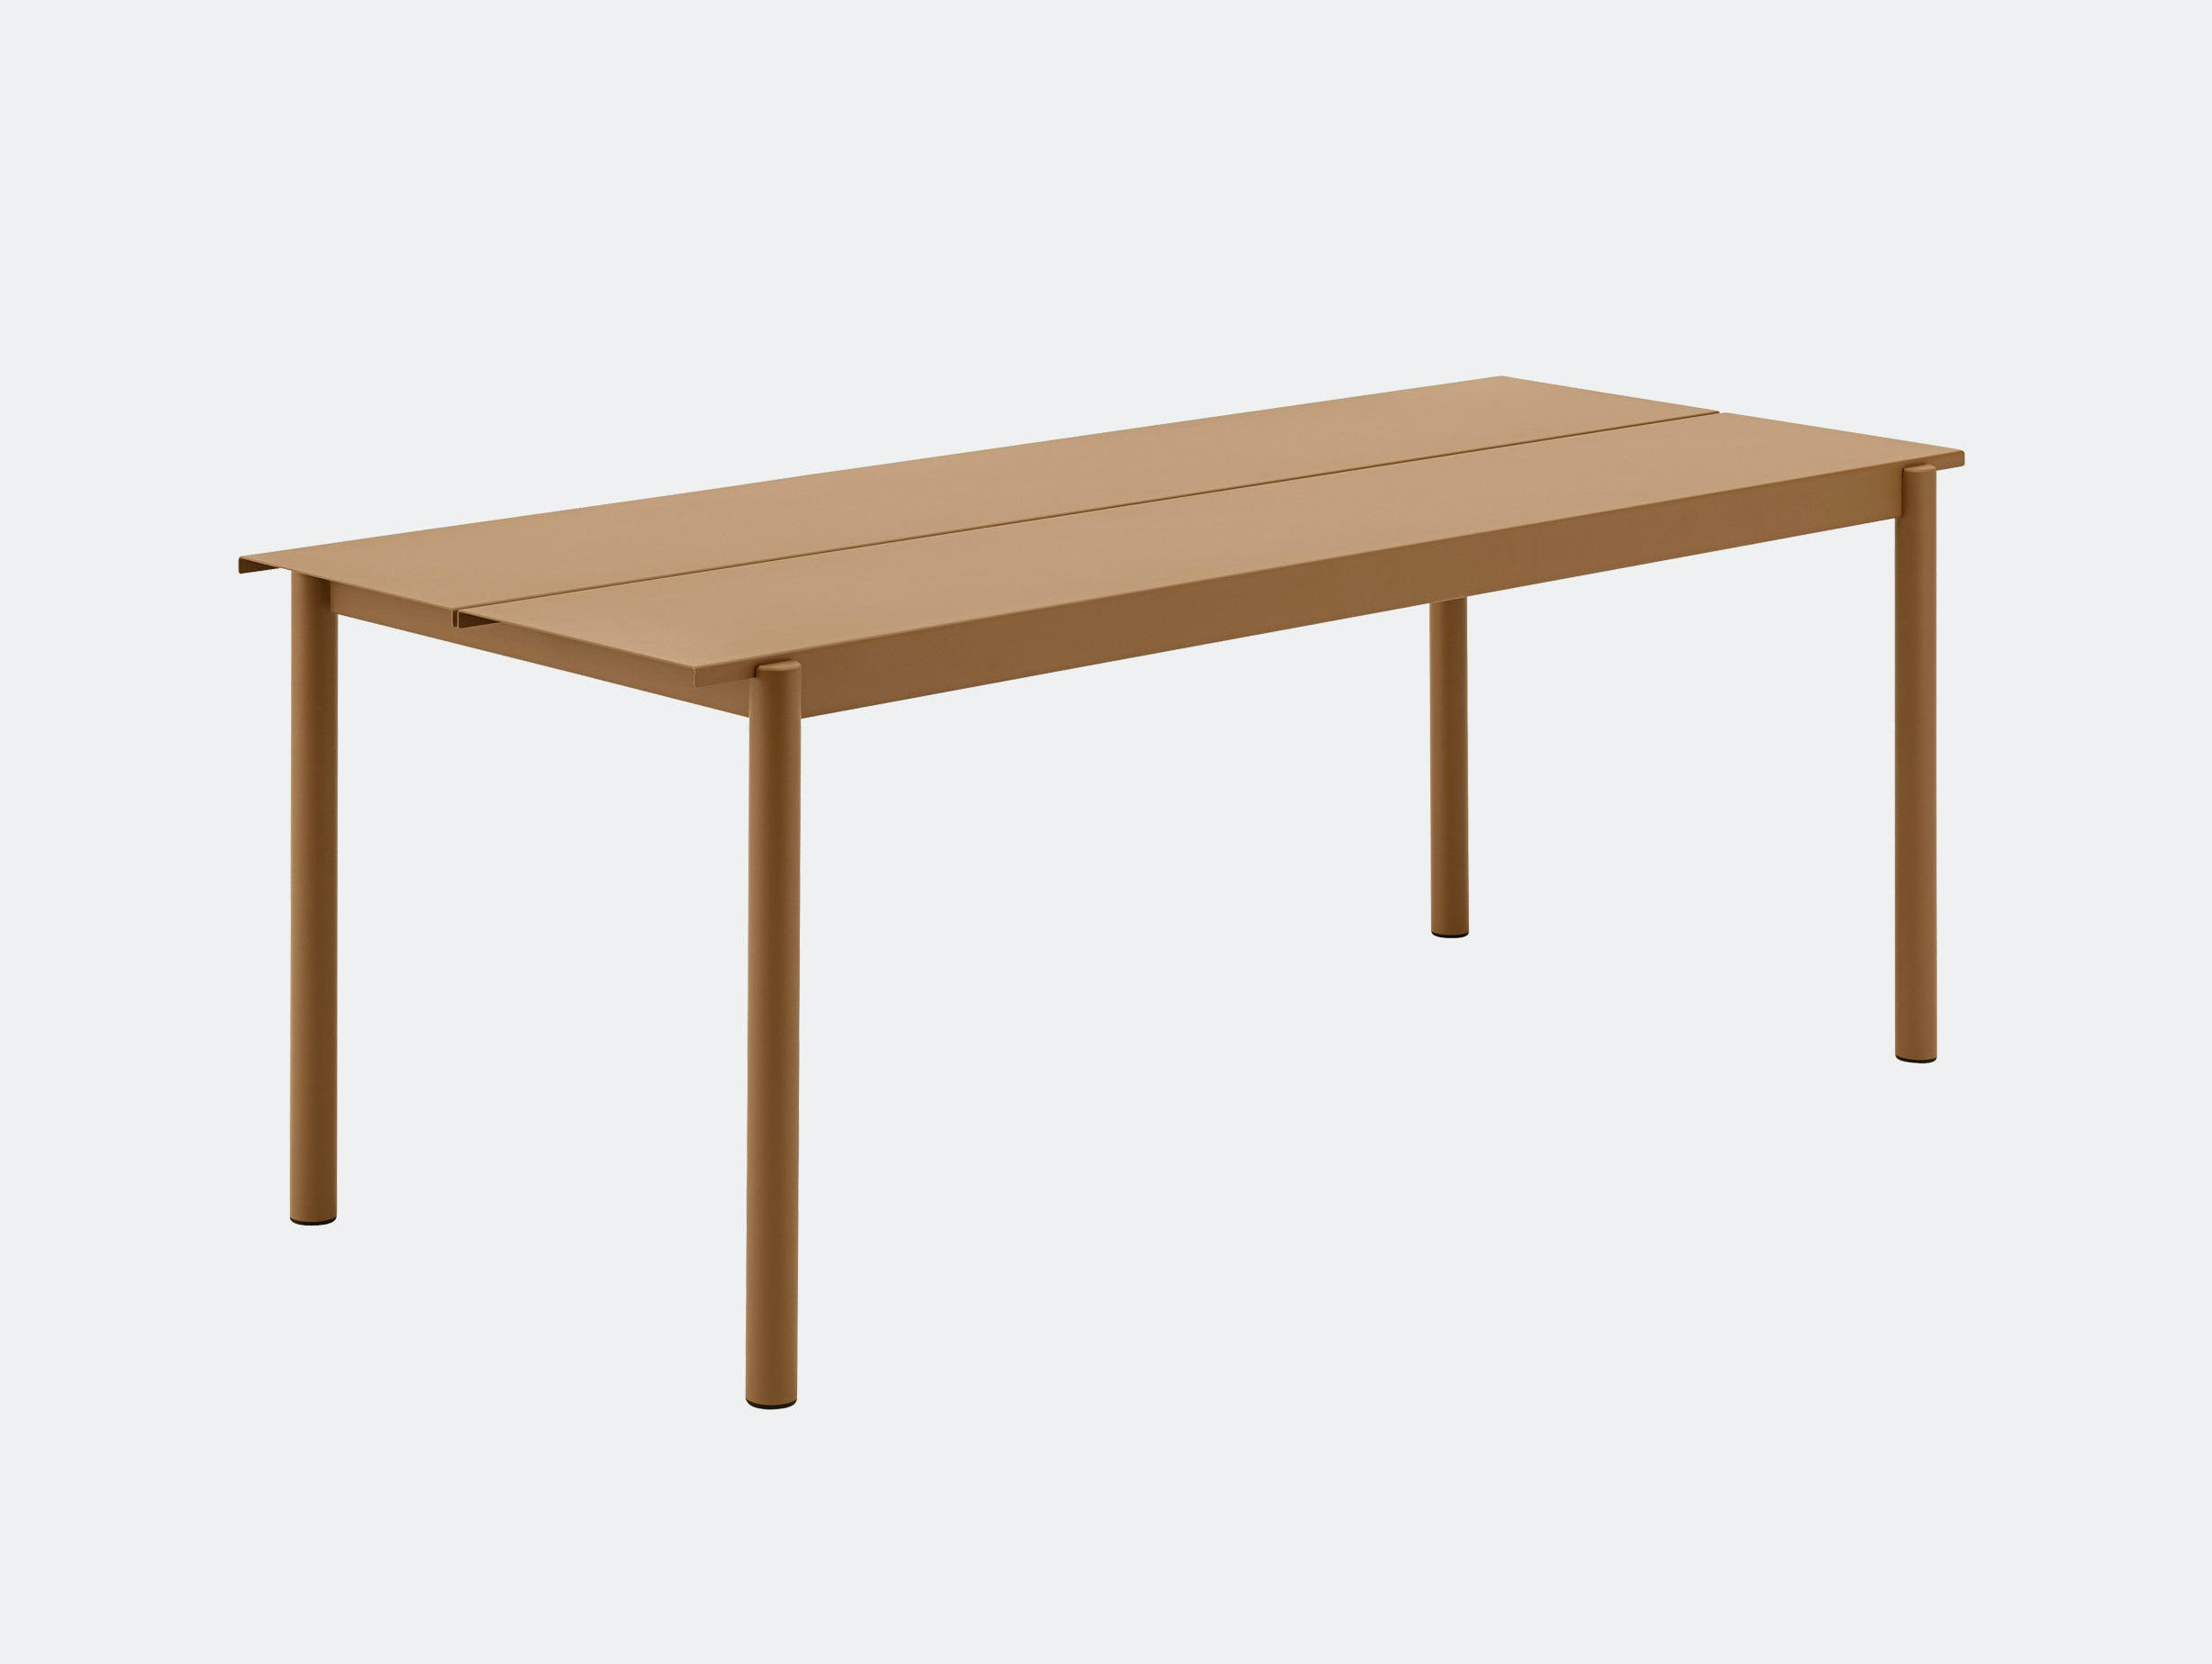 Muuto Linear Steel Outdoor Table L 200Cm Burnt Orange Thomas Bentzen